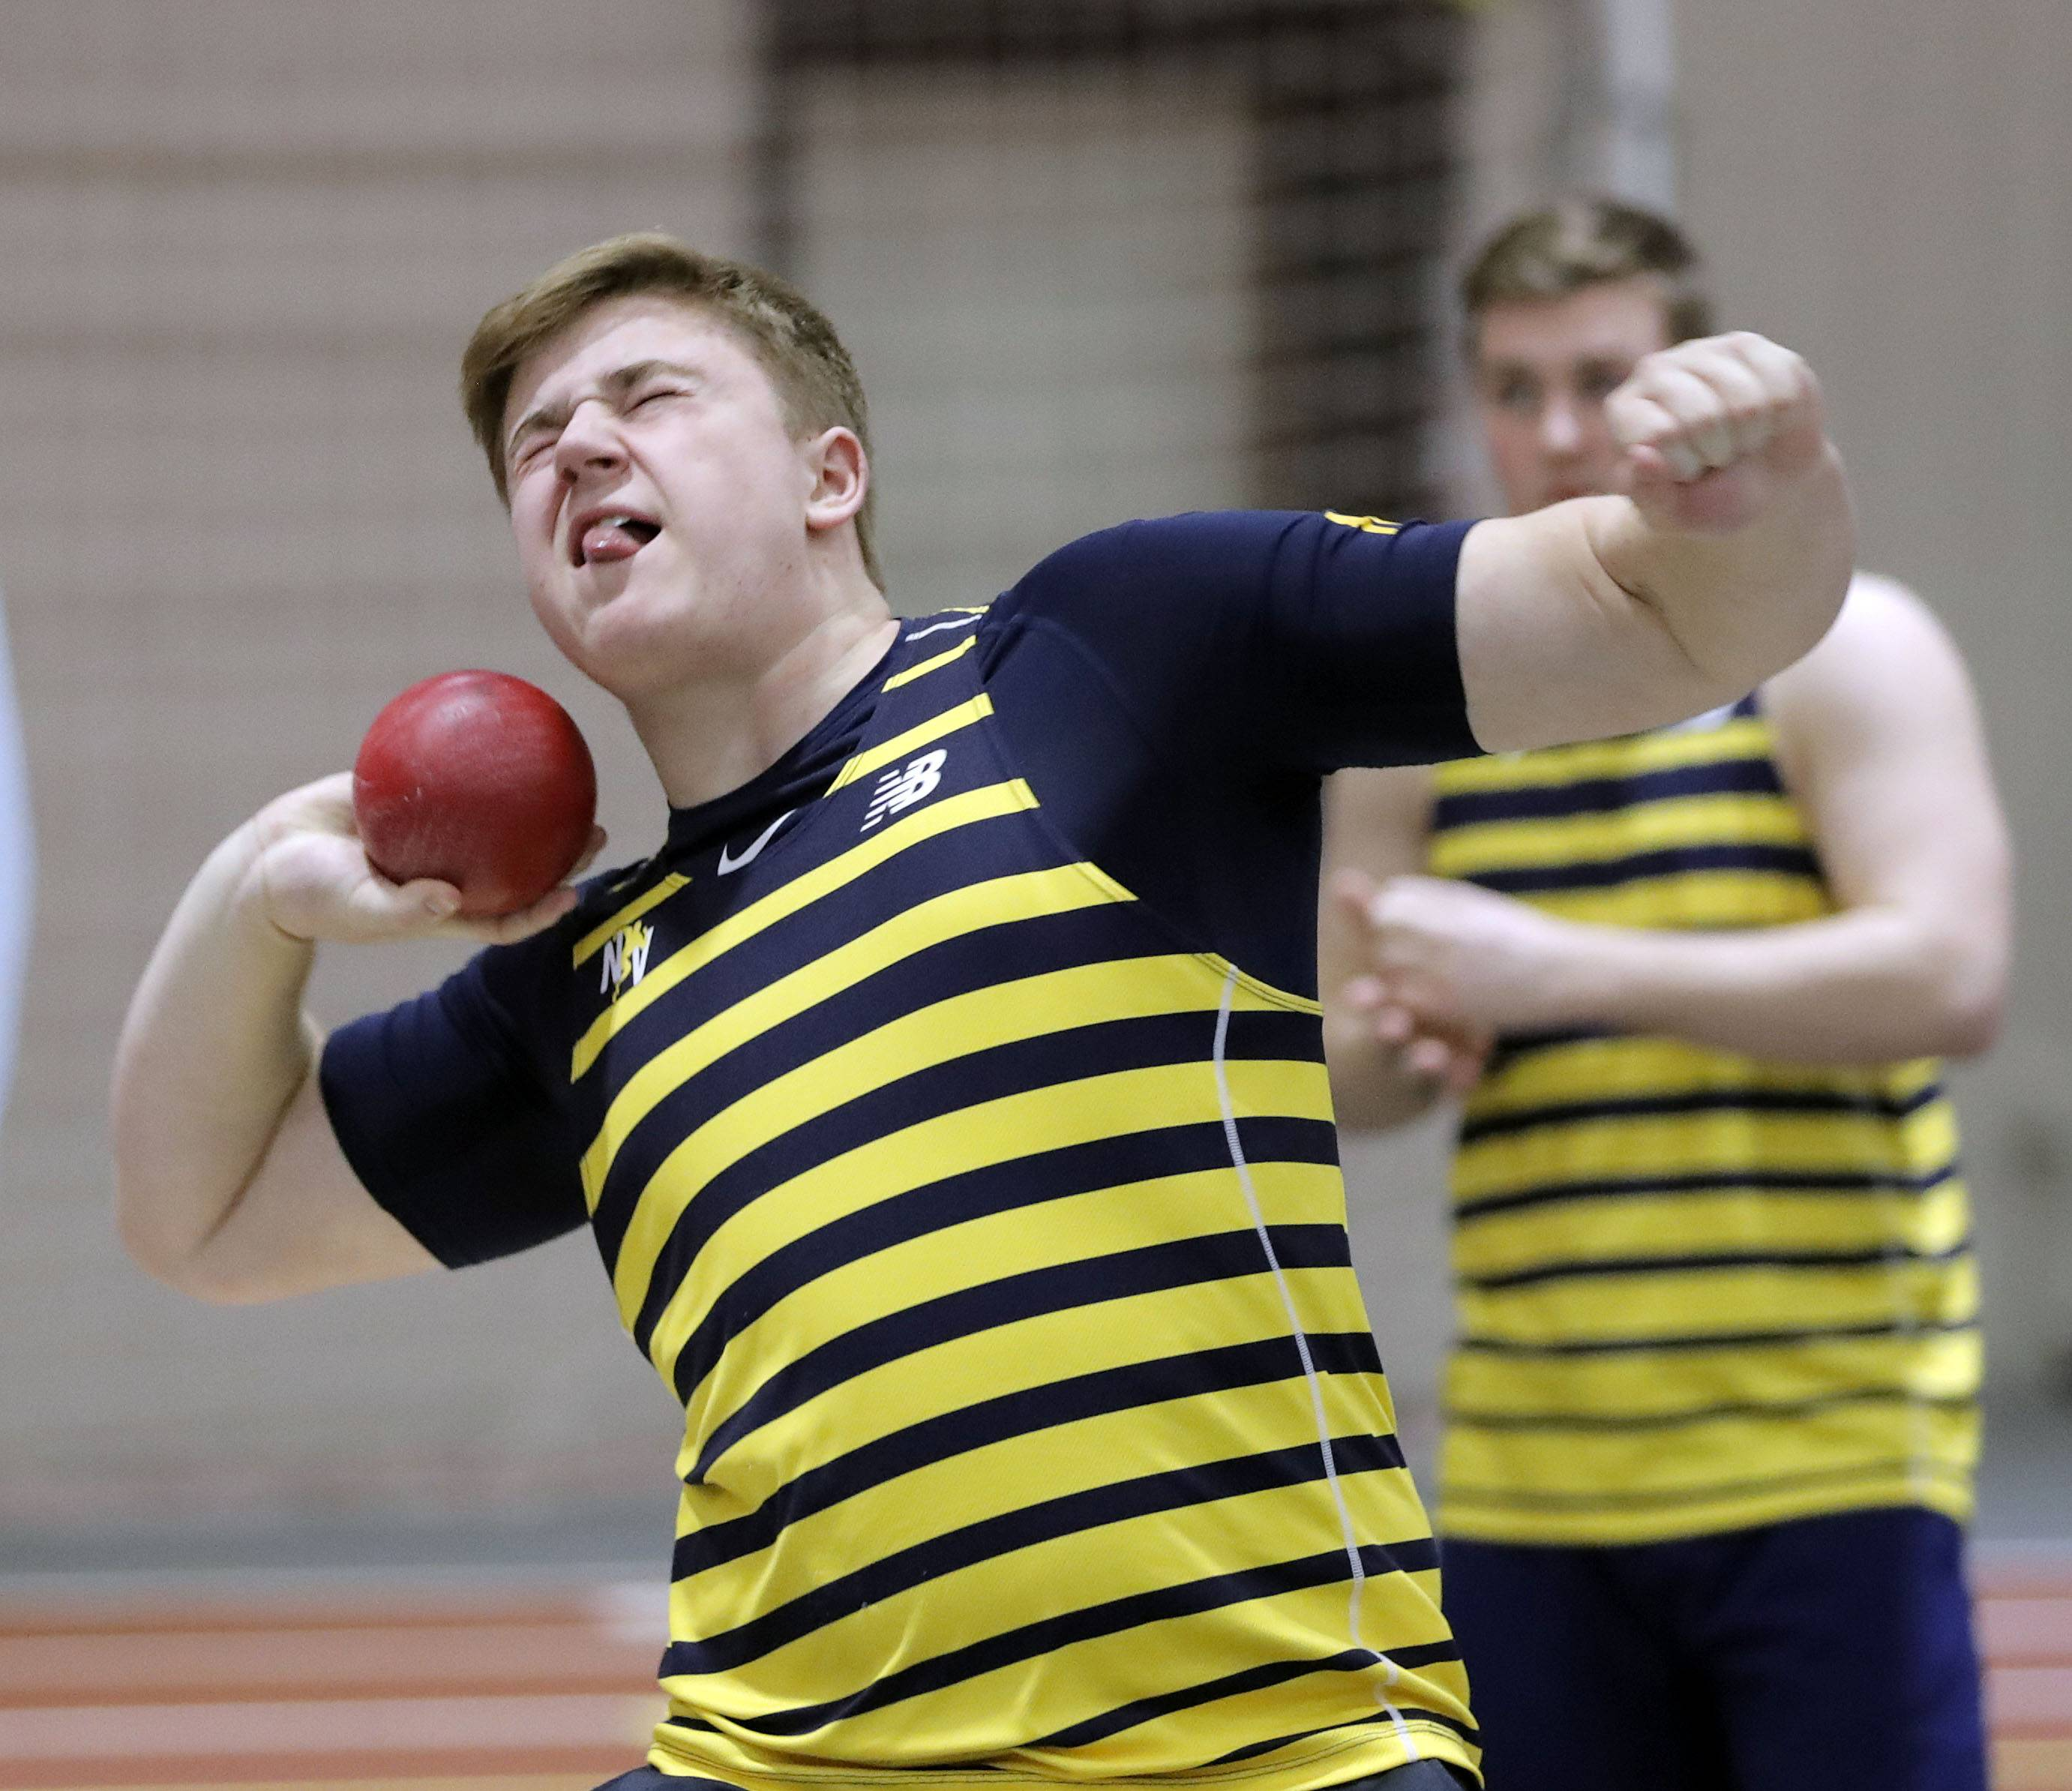 Neuqua Valley's Matthew Appel competes in the shot put during the DuPage Valley Conference boys track meet at North Central College in Naperville Friday.